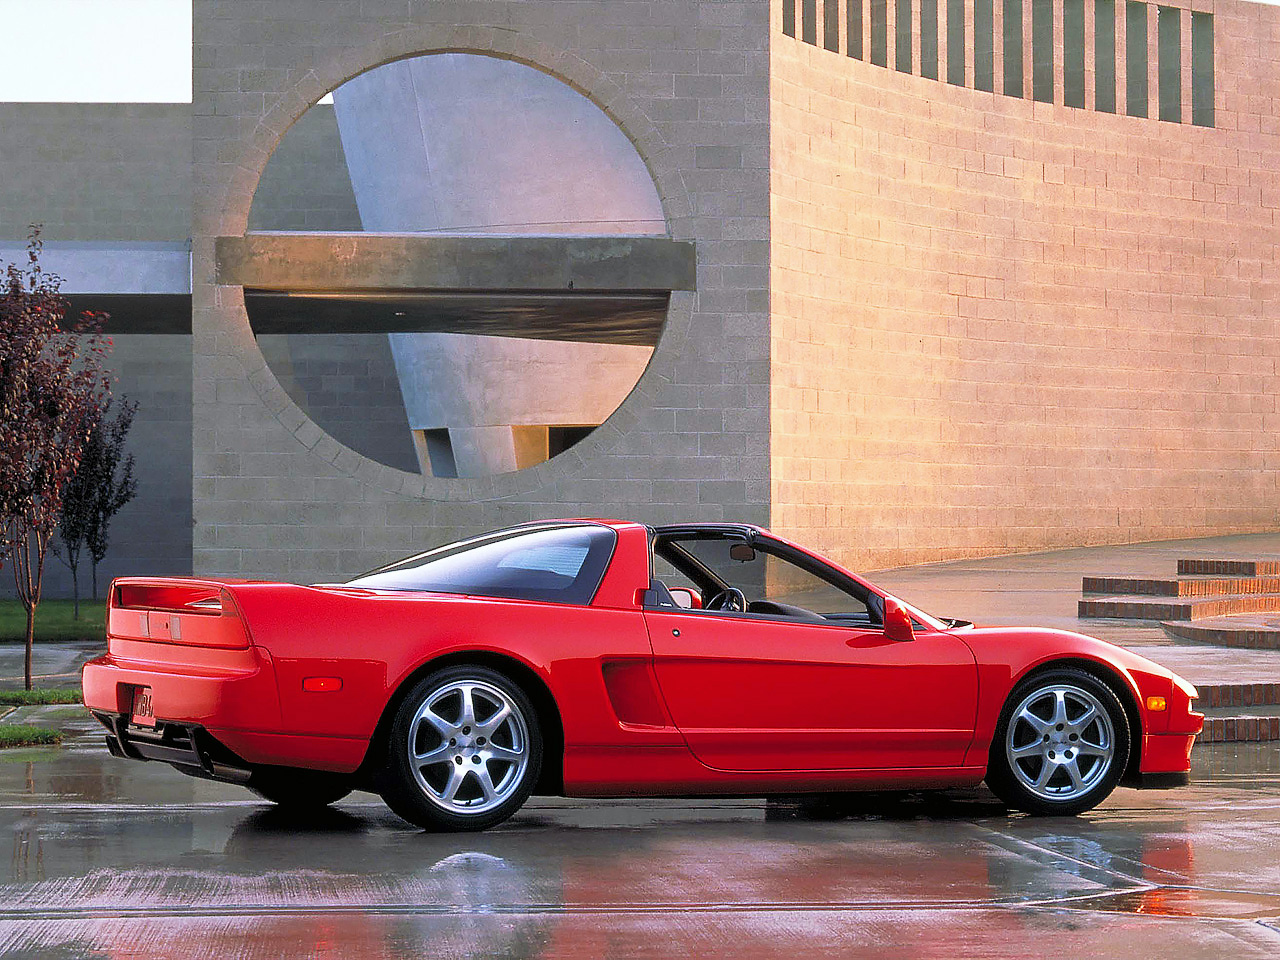 Honda NSX effect 25 years after the original - Drive